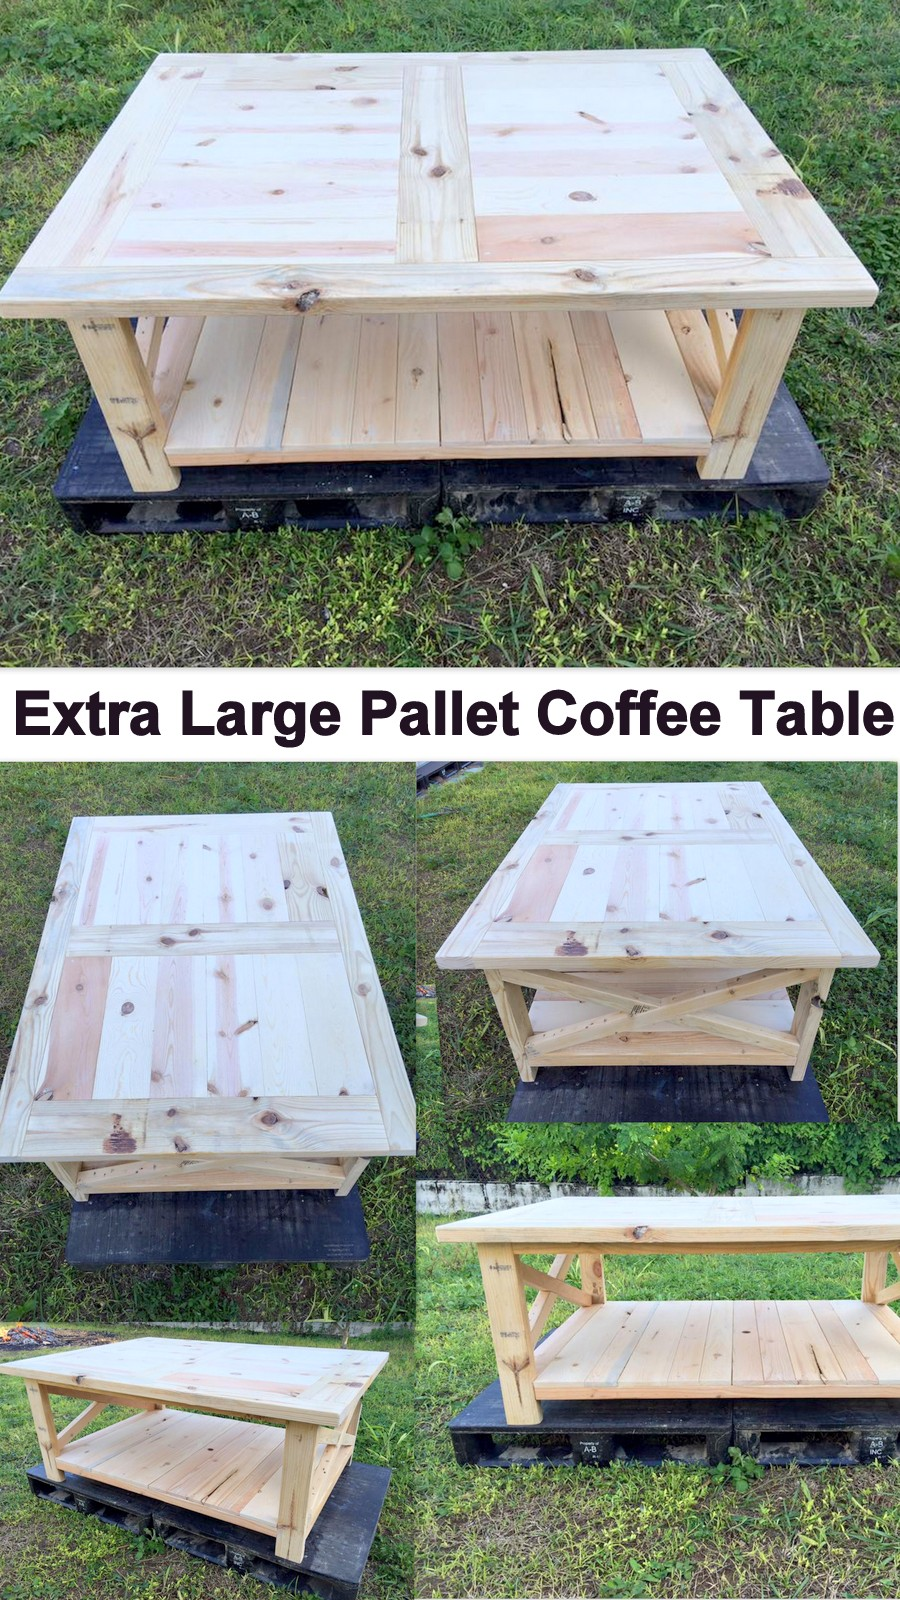 Extra Large Pallet Coffee Table